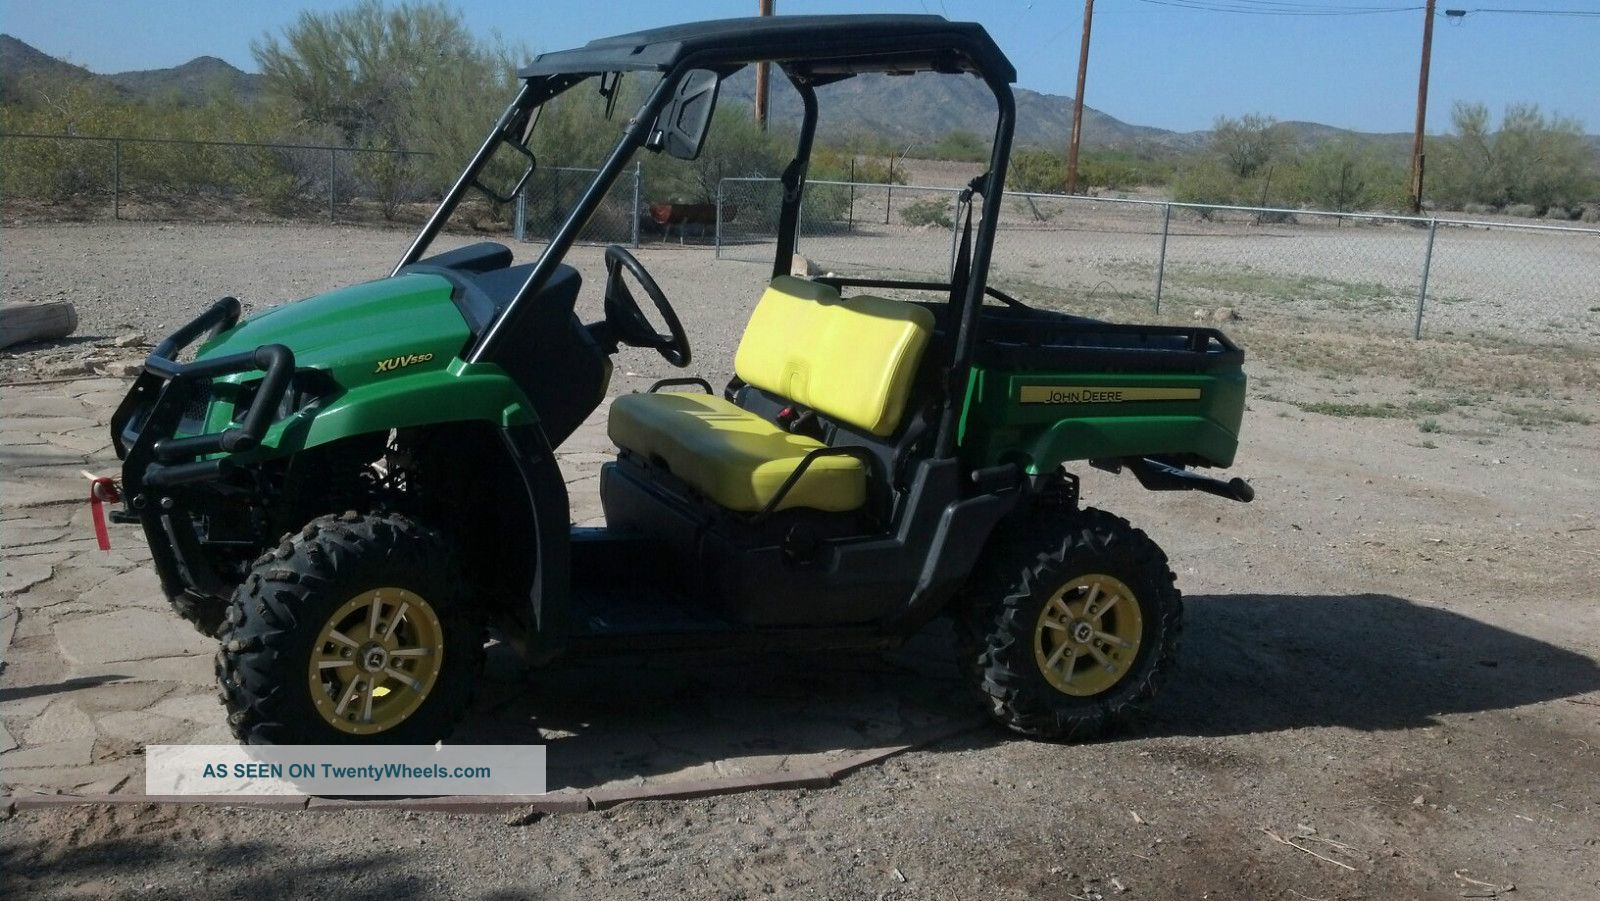 2012 John Deere Gator Xuv 550 Utility Vehicles photo